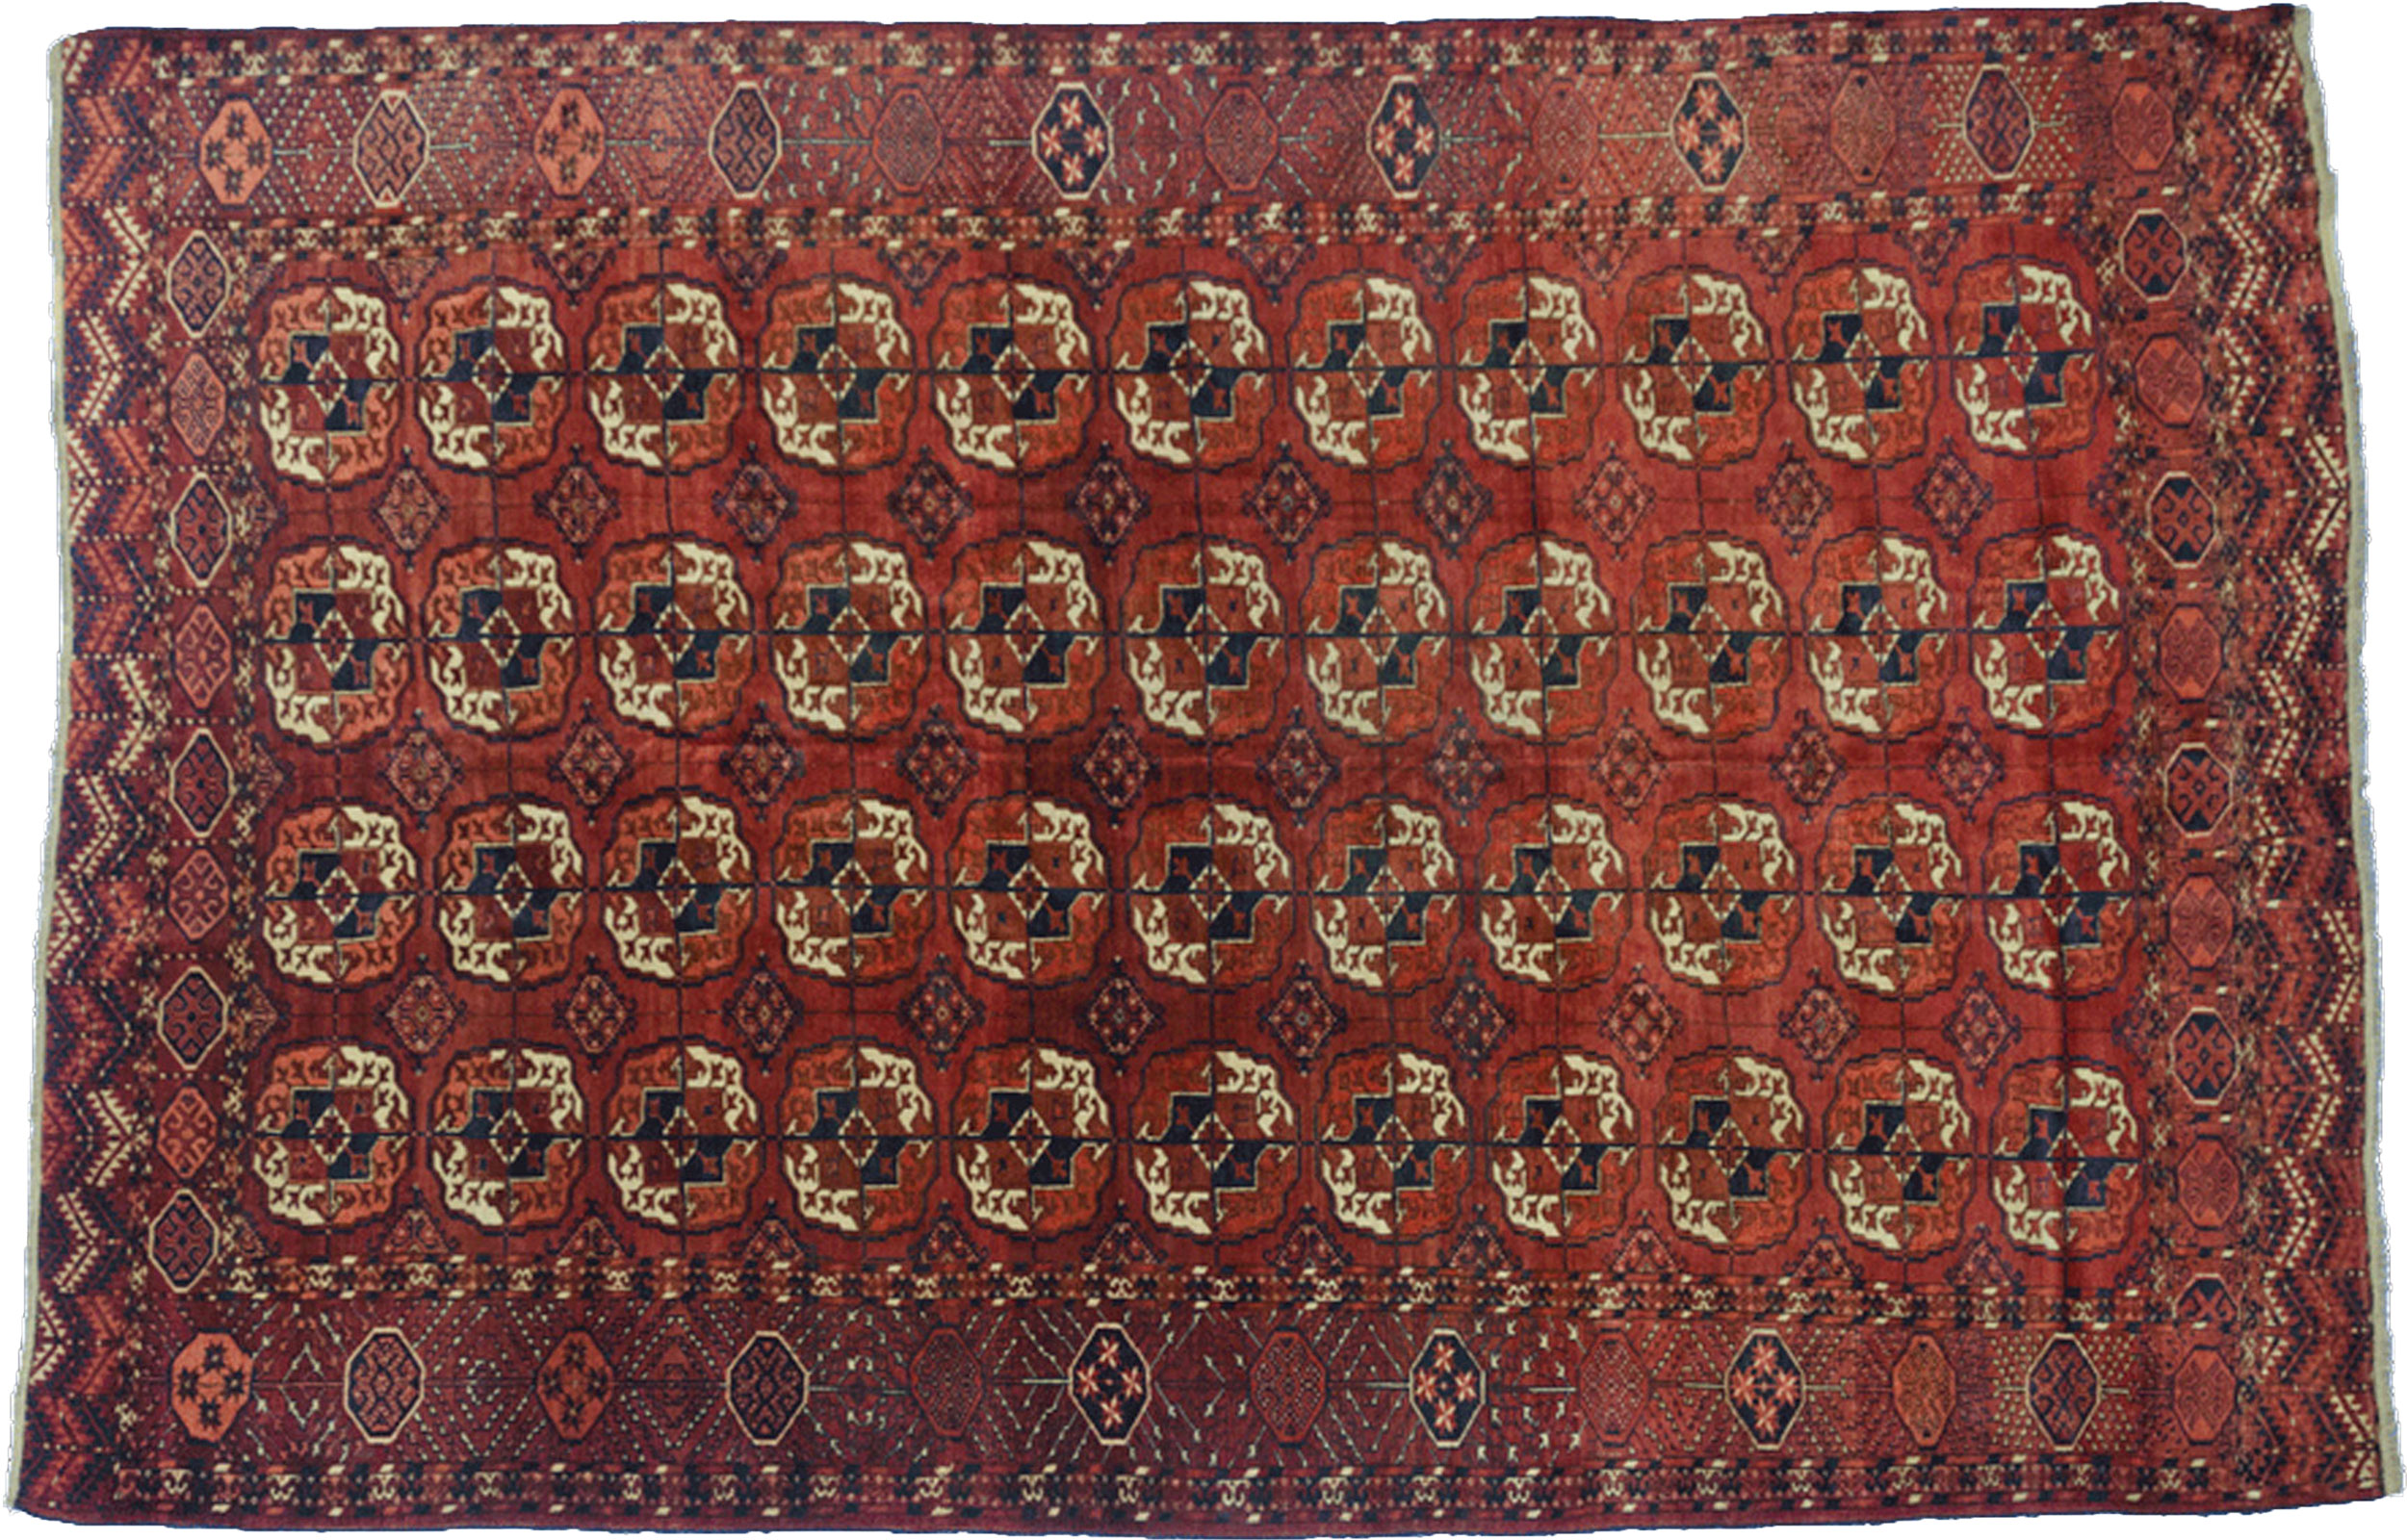 Antique Turkmen Carpet 297x207cm